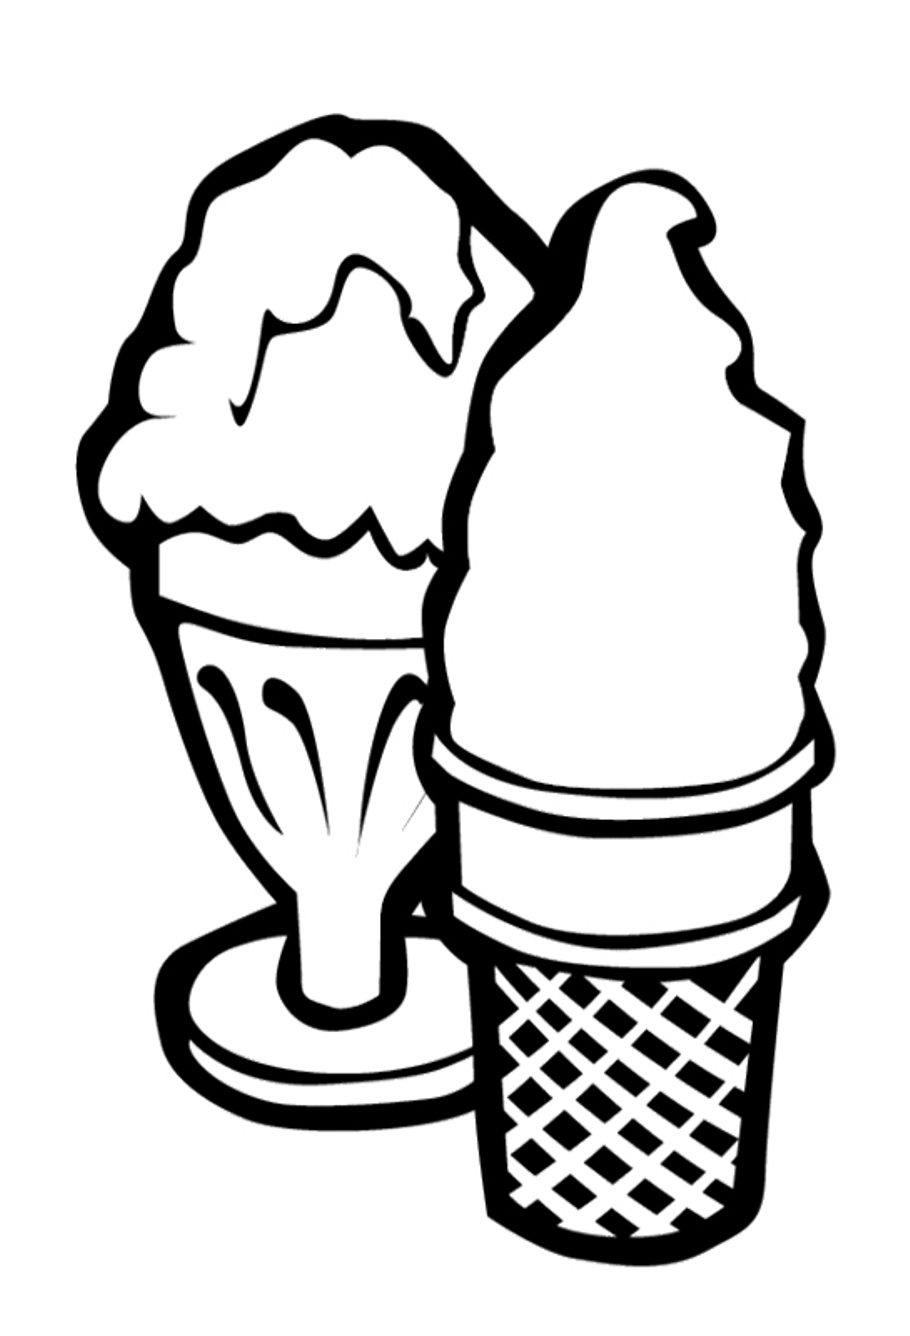 ice cream coloring template printable coloring sheet instant download ice cream cones coloring template cream ice